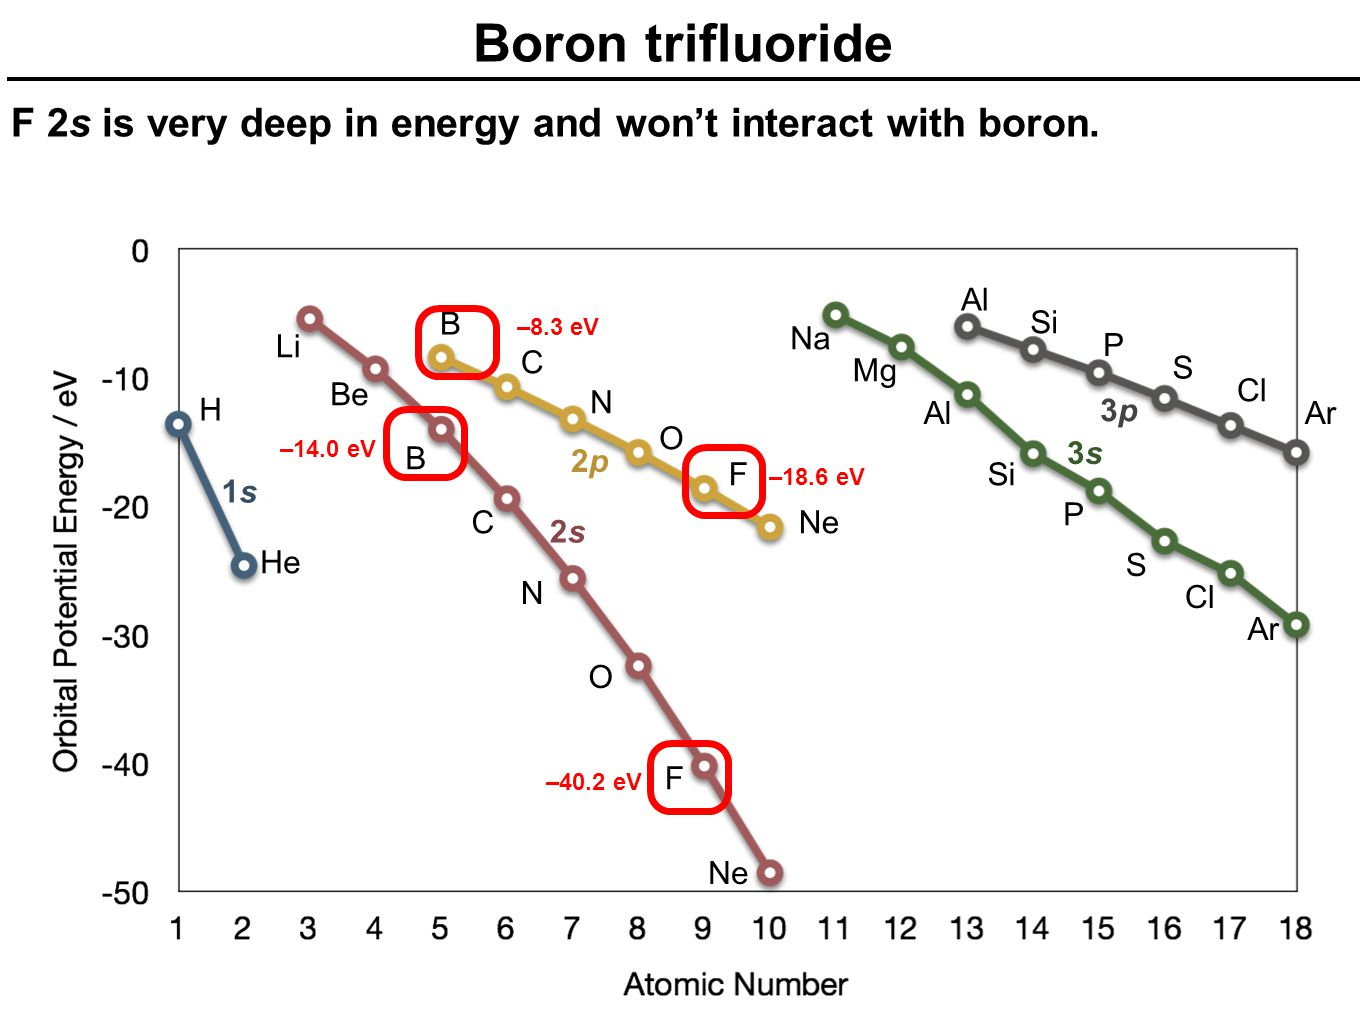 Boron trifluoride F 2s is very deep in energy and won't interact with boron. Al. B. Si. –18.6 eV.